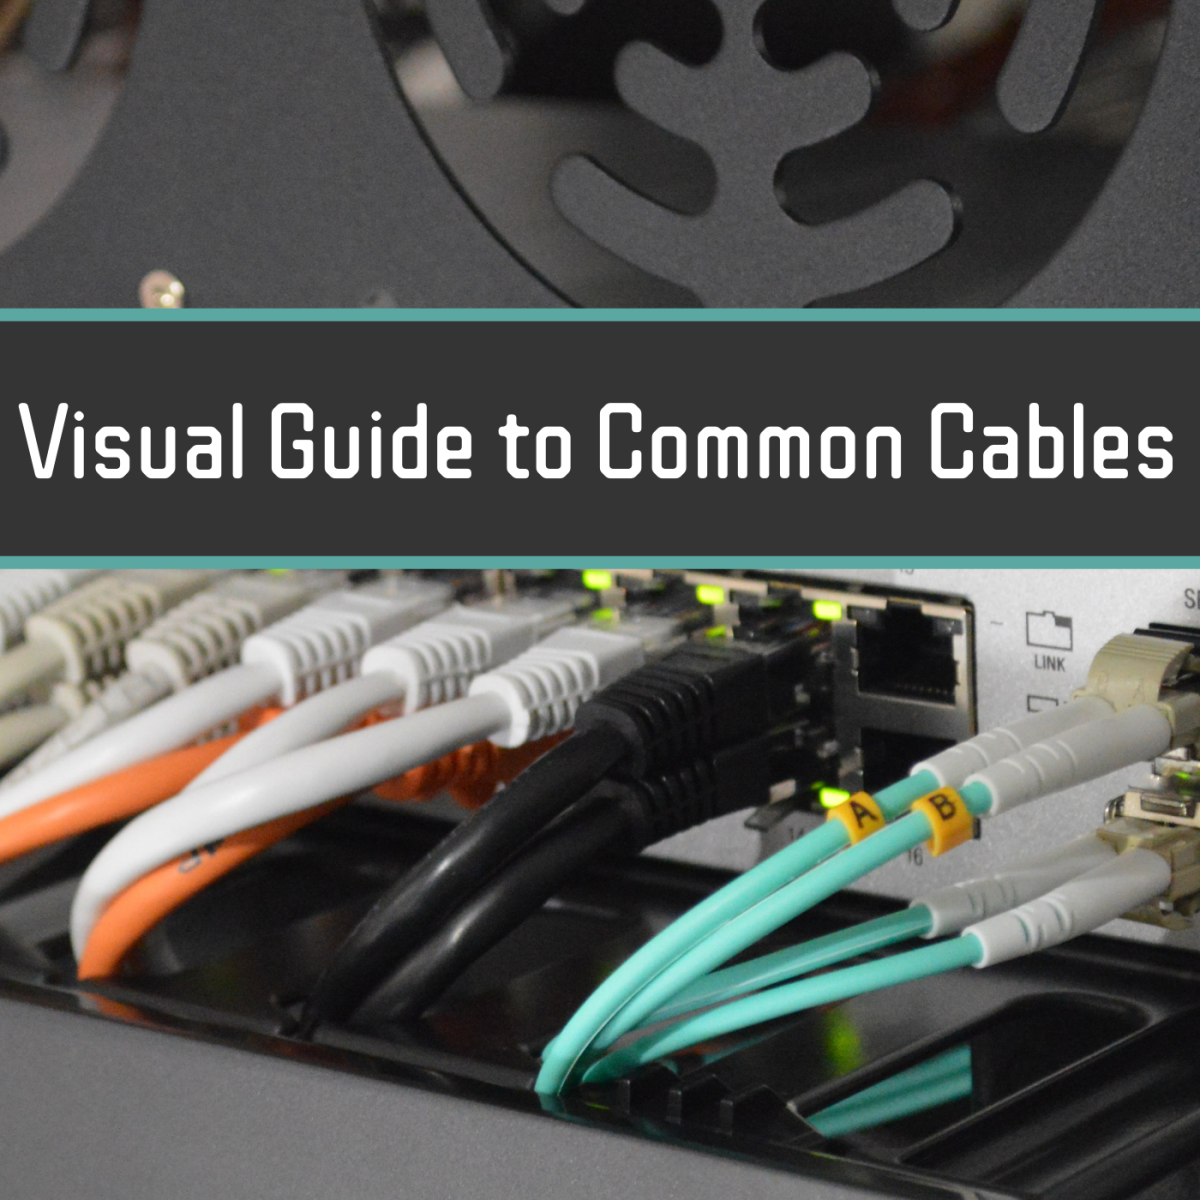 There are so many different types of cables. Learn more about which is which and what each one does.